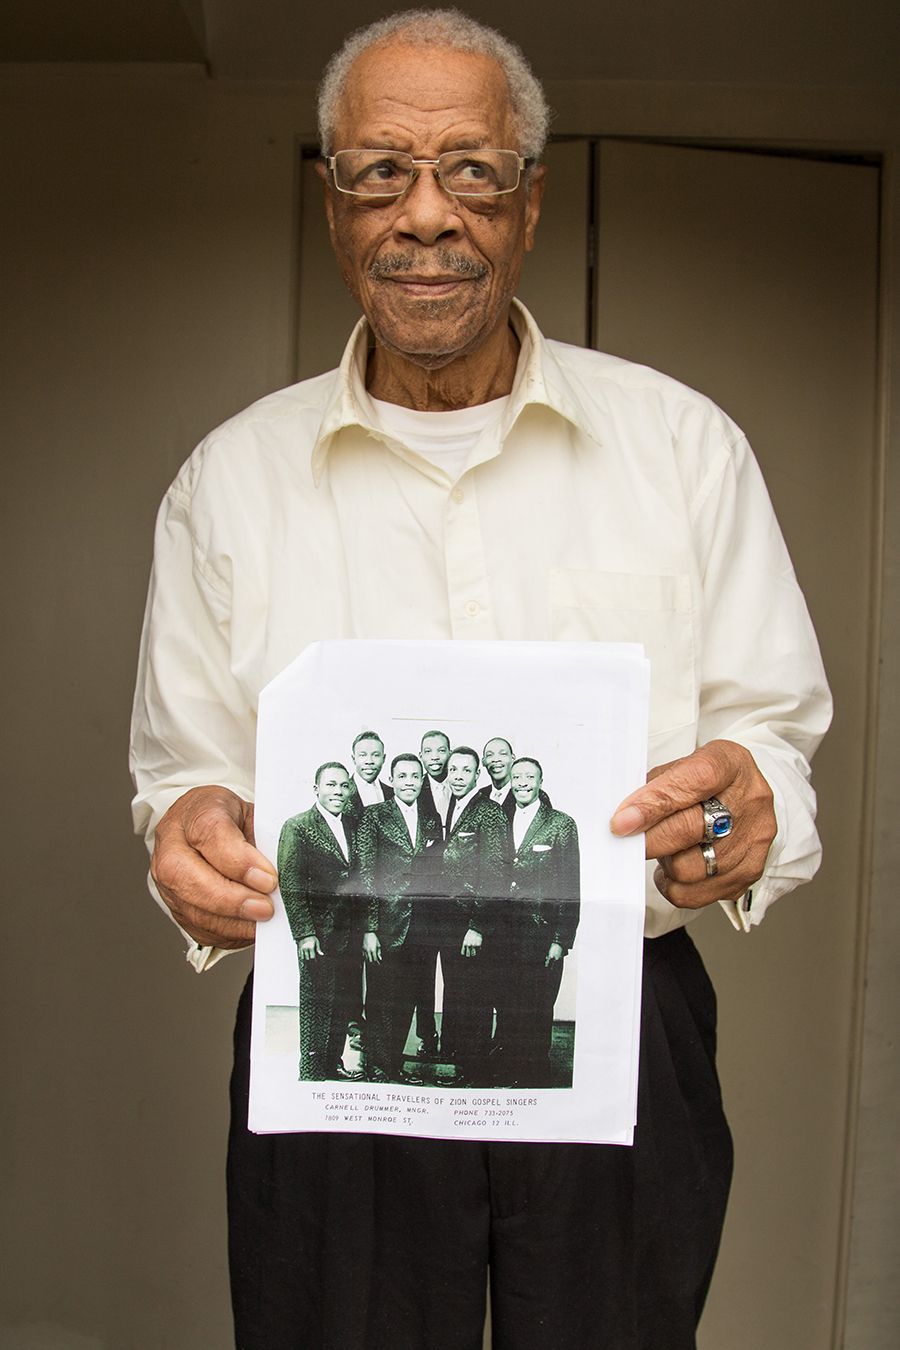 Carnell Drummer holds an old photo of his group the Sensational Travelers of Zion, who have a song on <i>No Other Love</i>. Drummer is second from right in the front row.